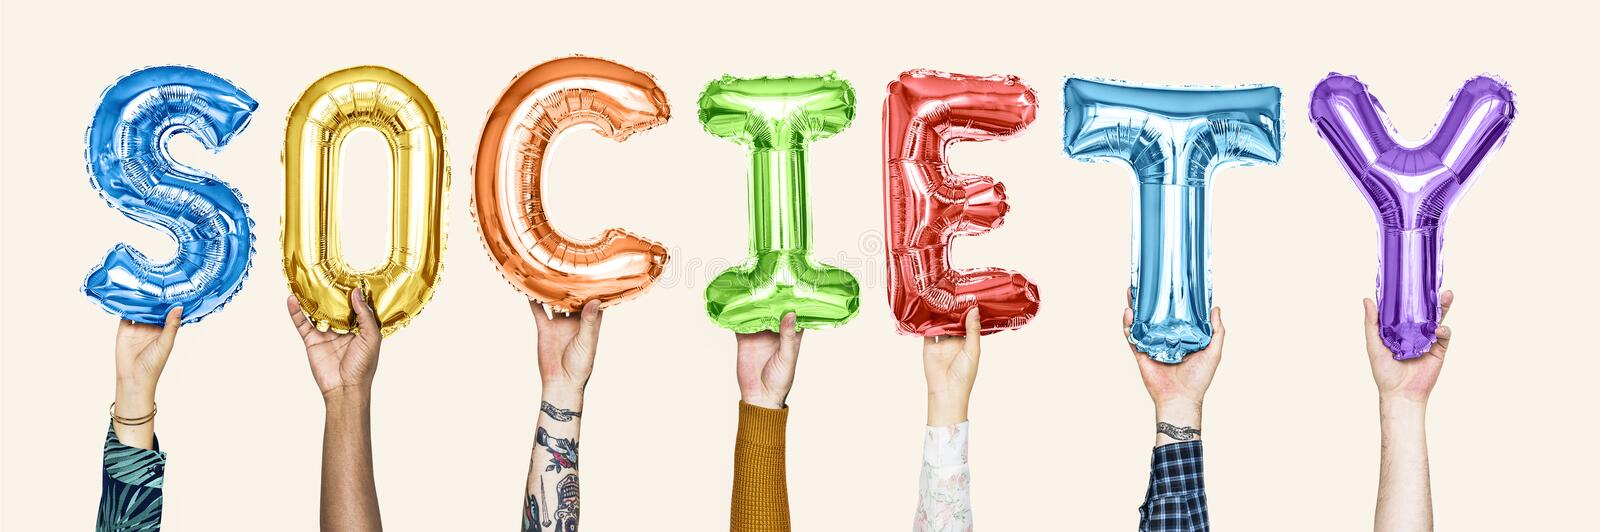 Colorful alphabet balloons forming the word society royalty free stock photos